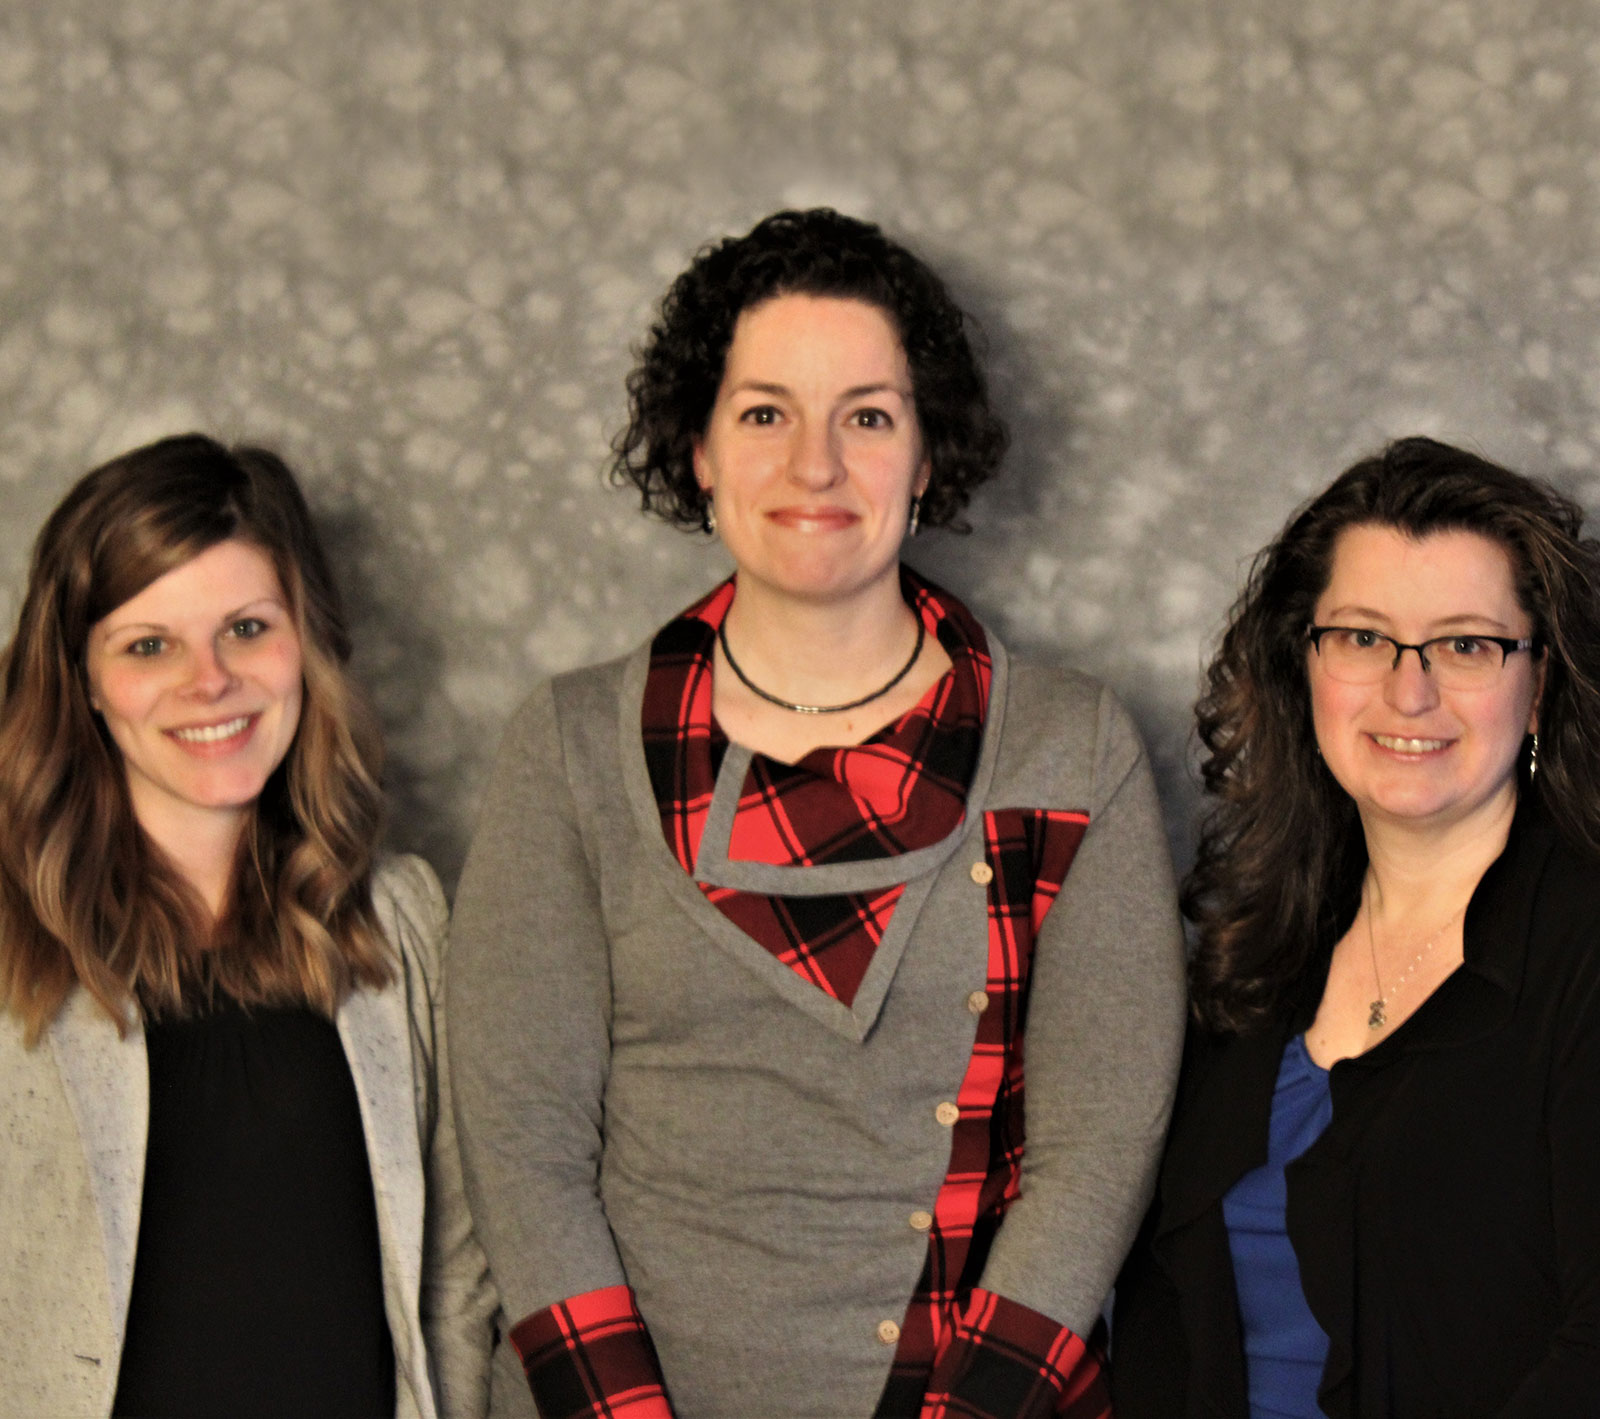 Staff: Caitlin Mullally, Laura Morse, and Samantha Eisentraut